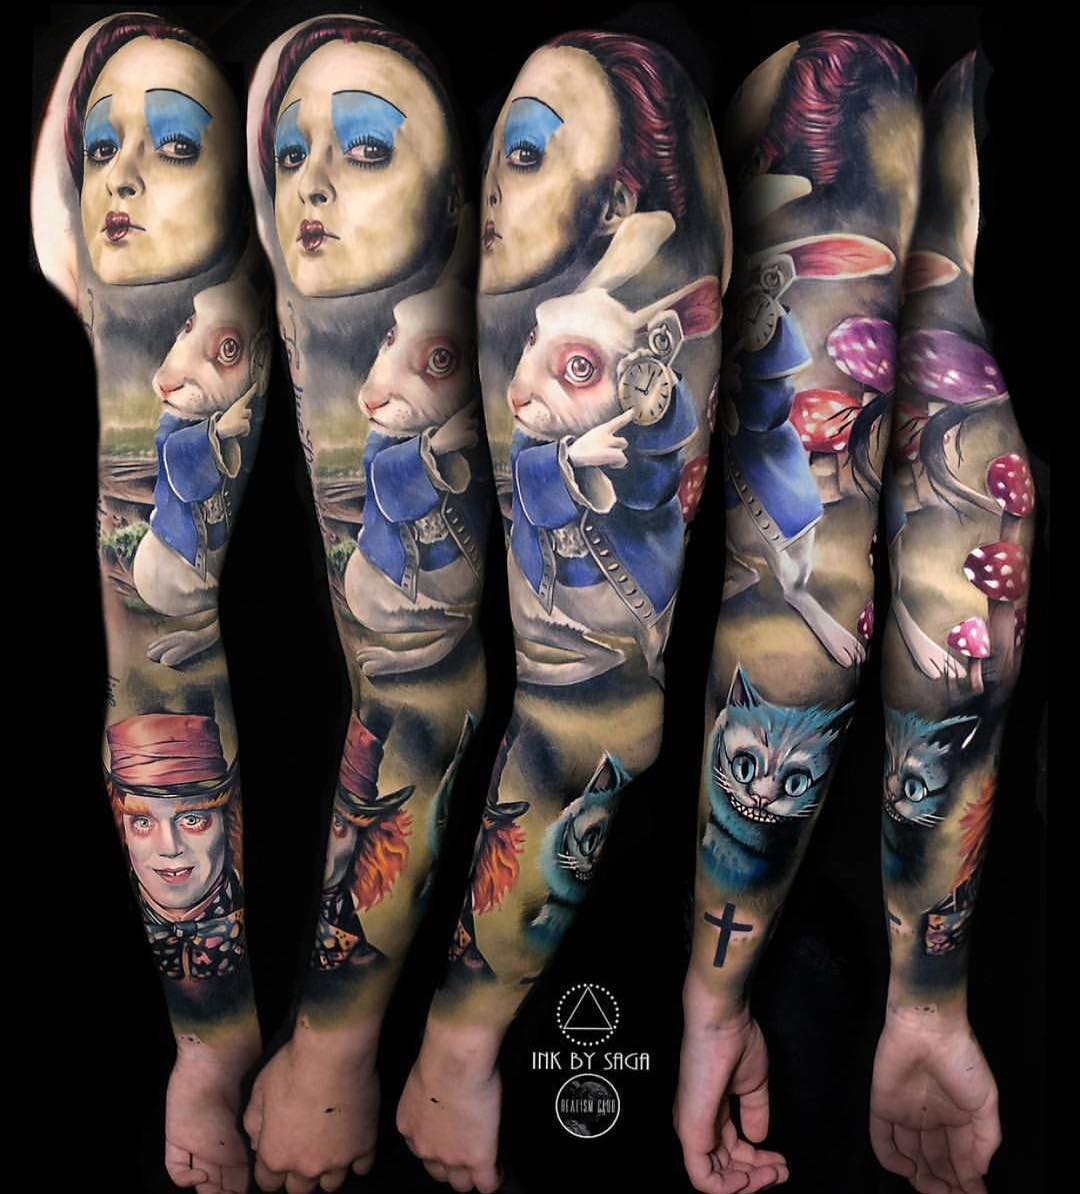 sleeve with characters from alice in wonderland